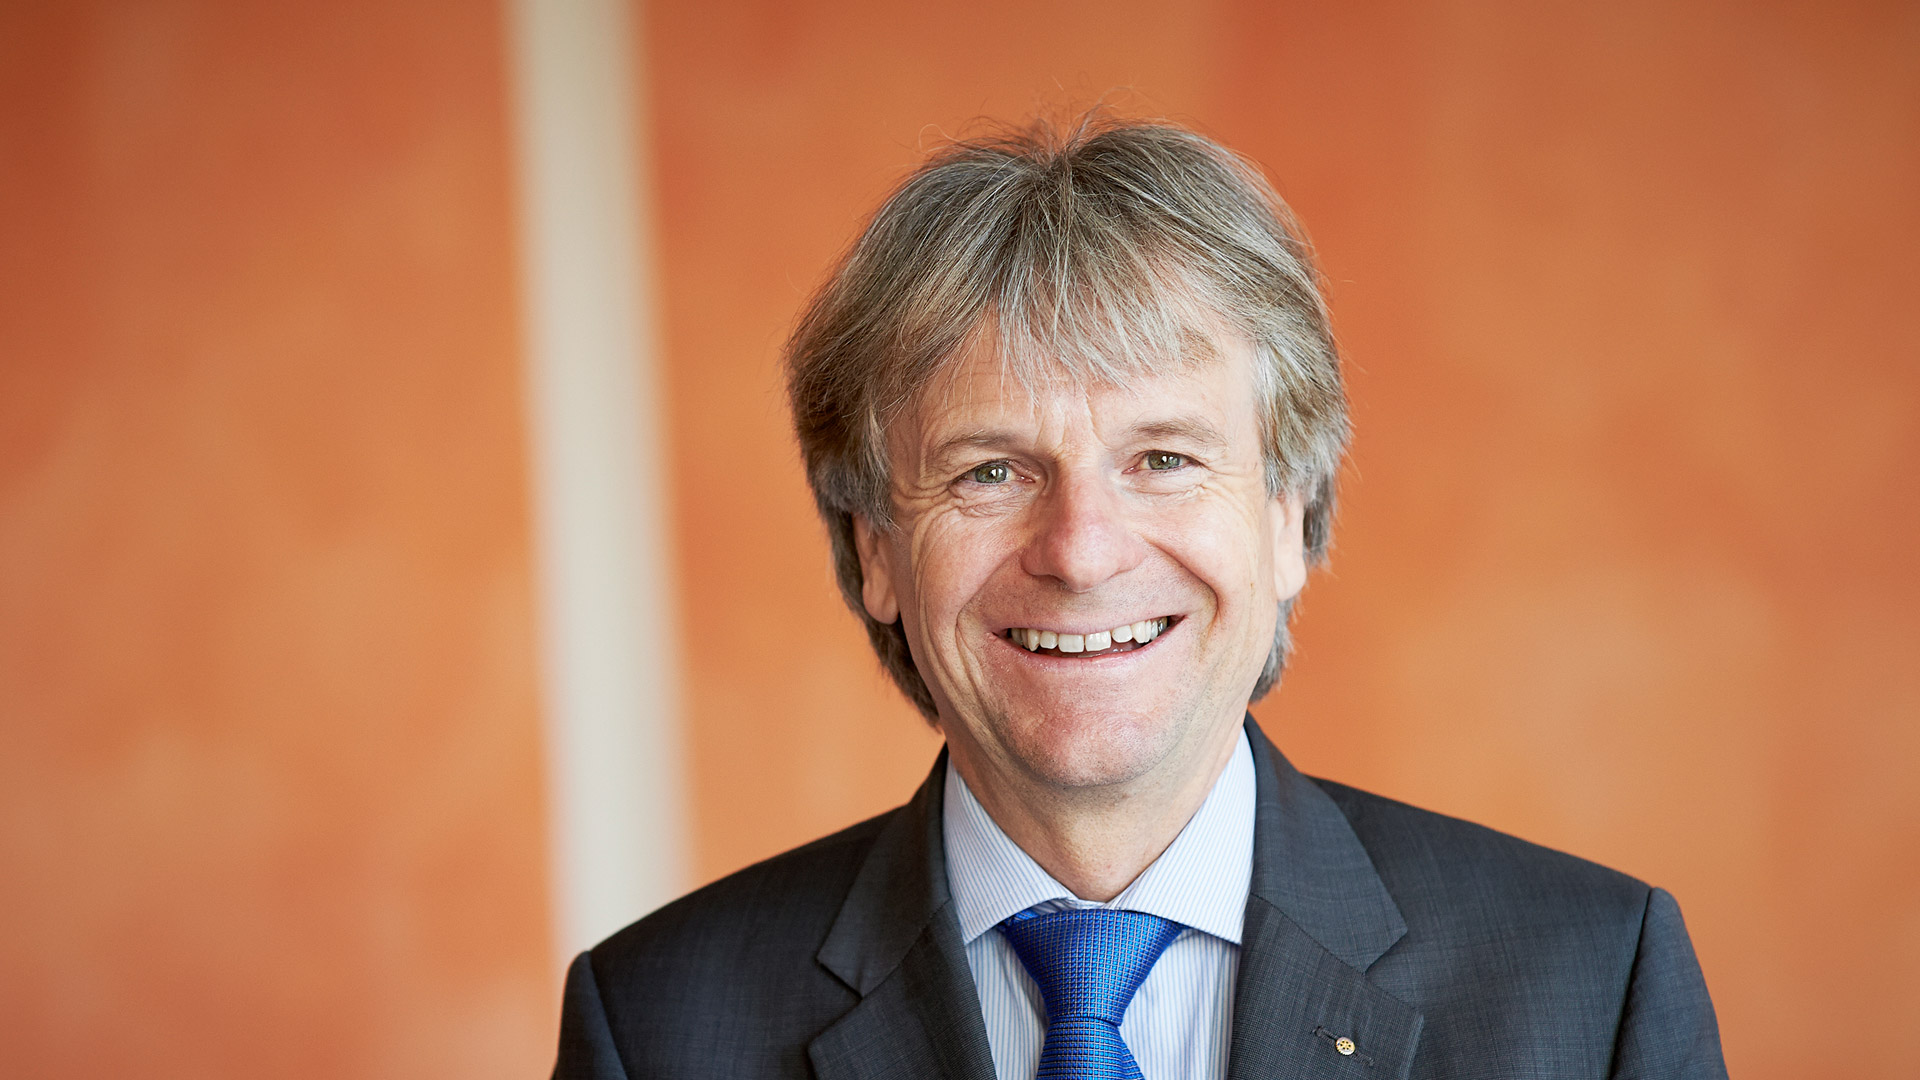 Jean-Daniel Pasche, President of the Swiss Watch Federation FH